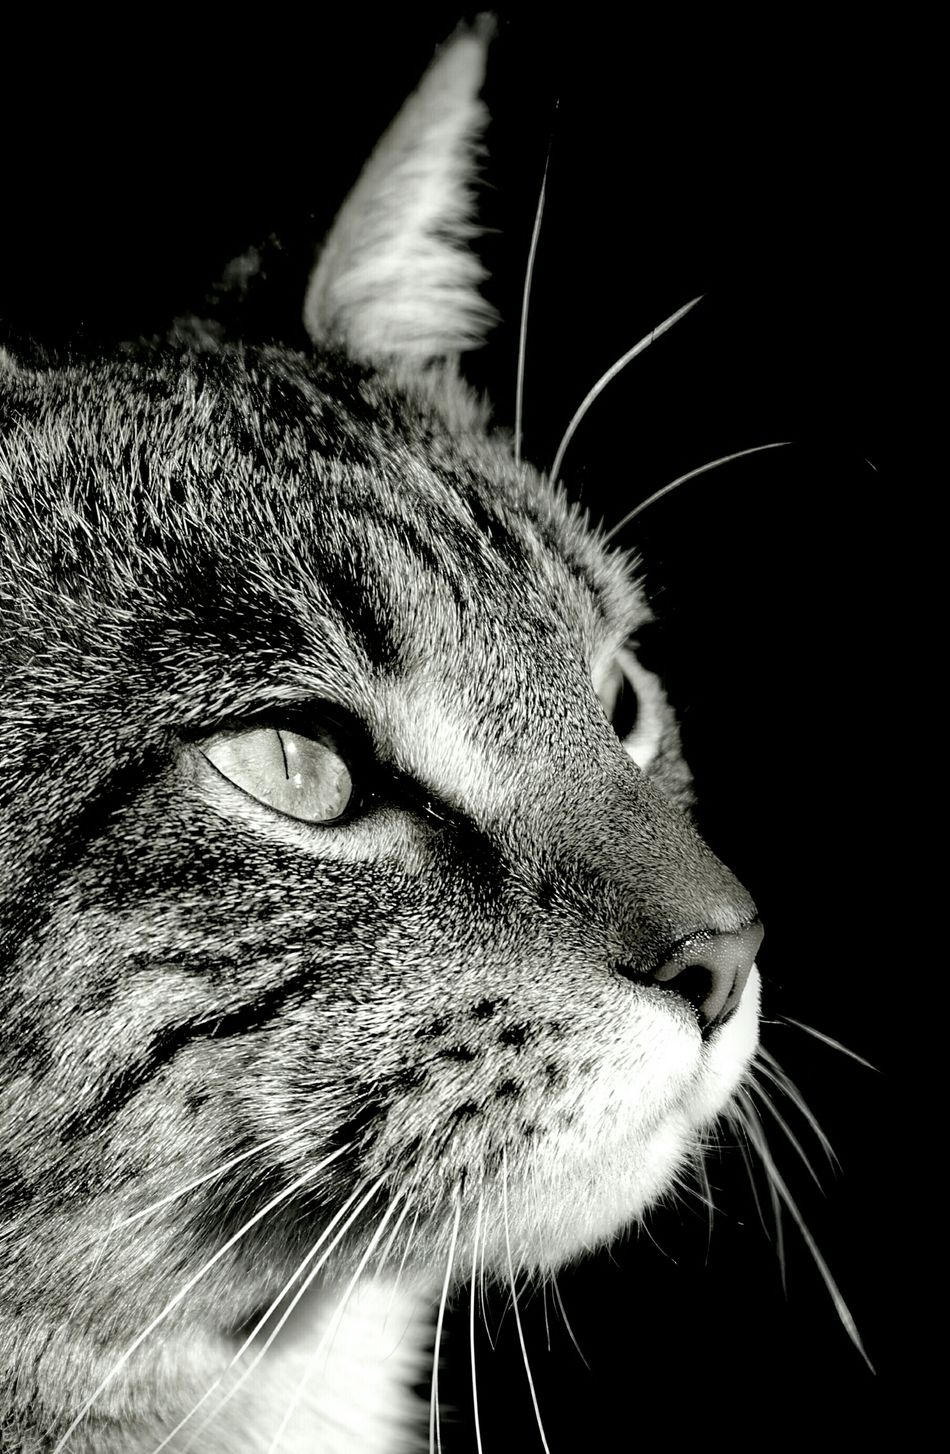 Kitty kat Close up. Cool cat happy to have his photo taken. Cats Meow Feline Chicopee Ma Capture The Moment Licker Happy Halloween Blackandwhite Monochrome Closeup EyeEm Best Shots - Black + White Shots Epic Amazing Pussycat Pusspuss Pussnboots Pussycatmowwwwww